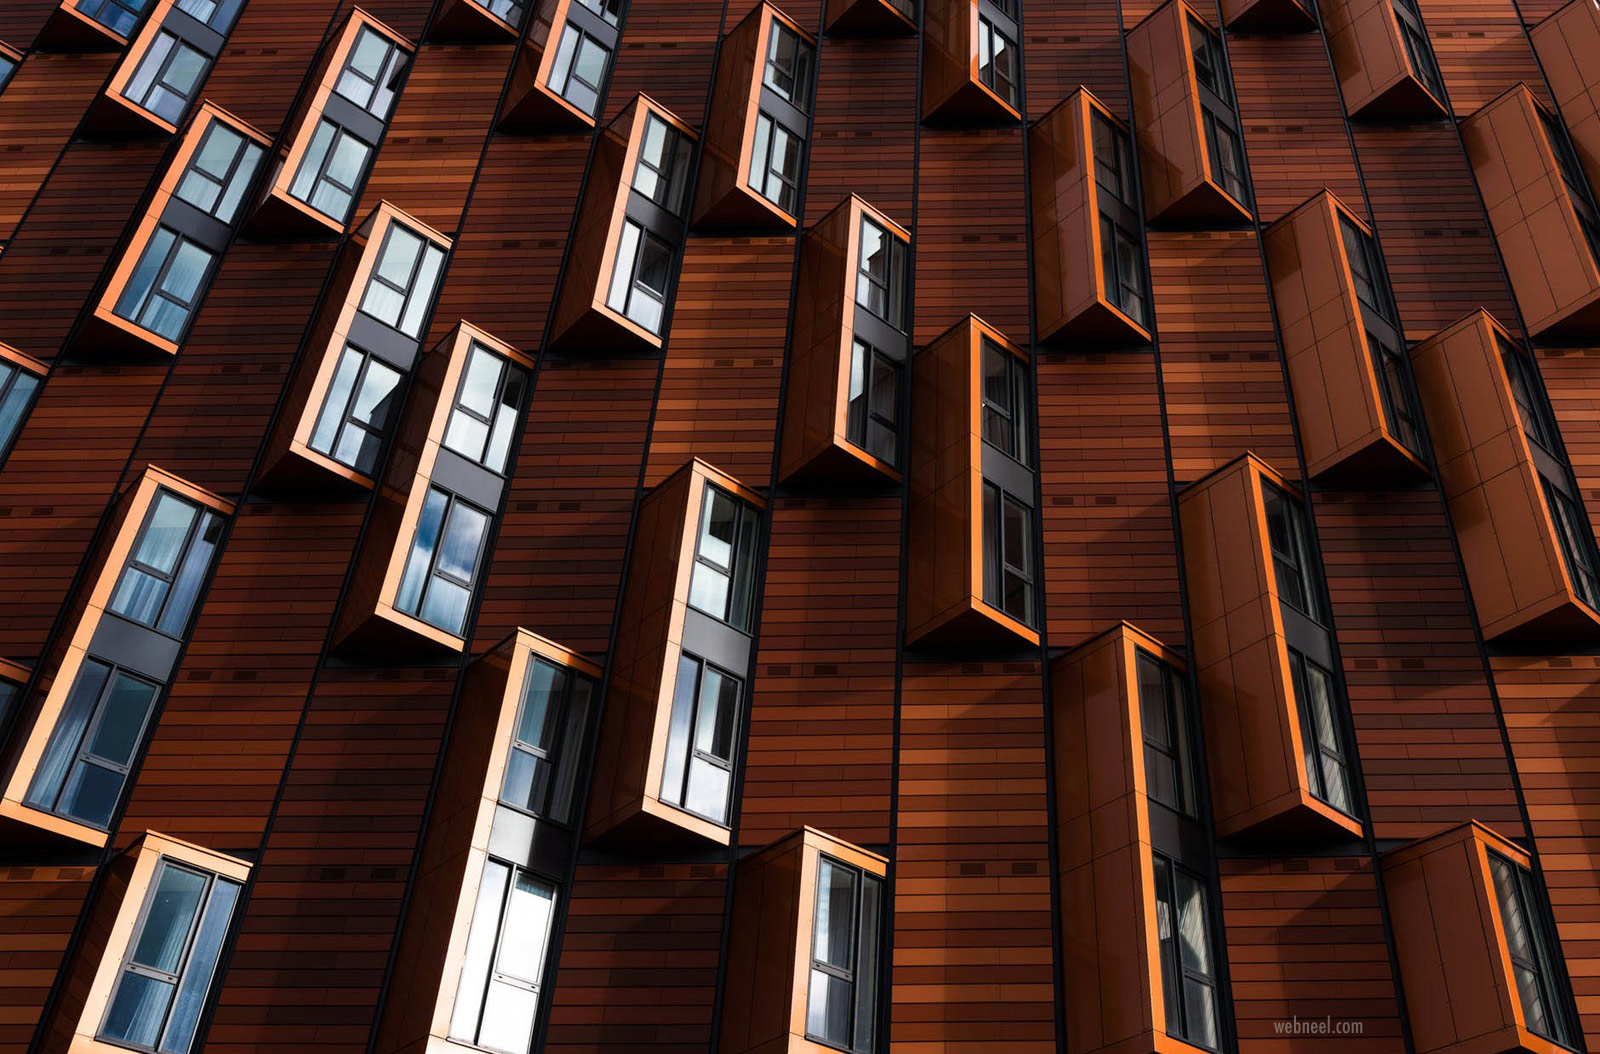 abstract photography architecture by snapwire